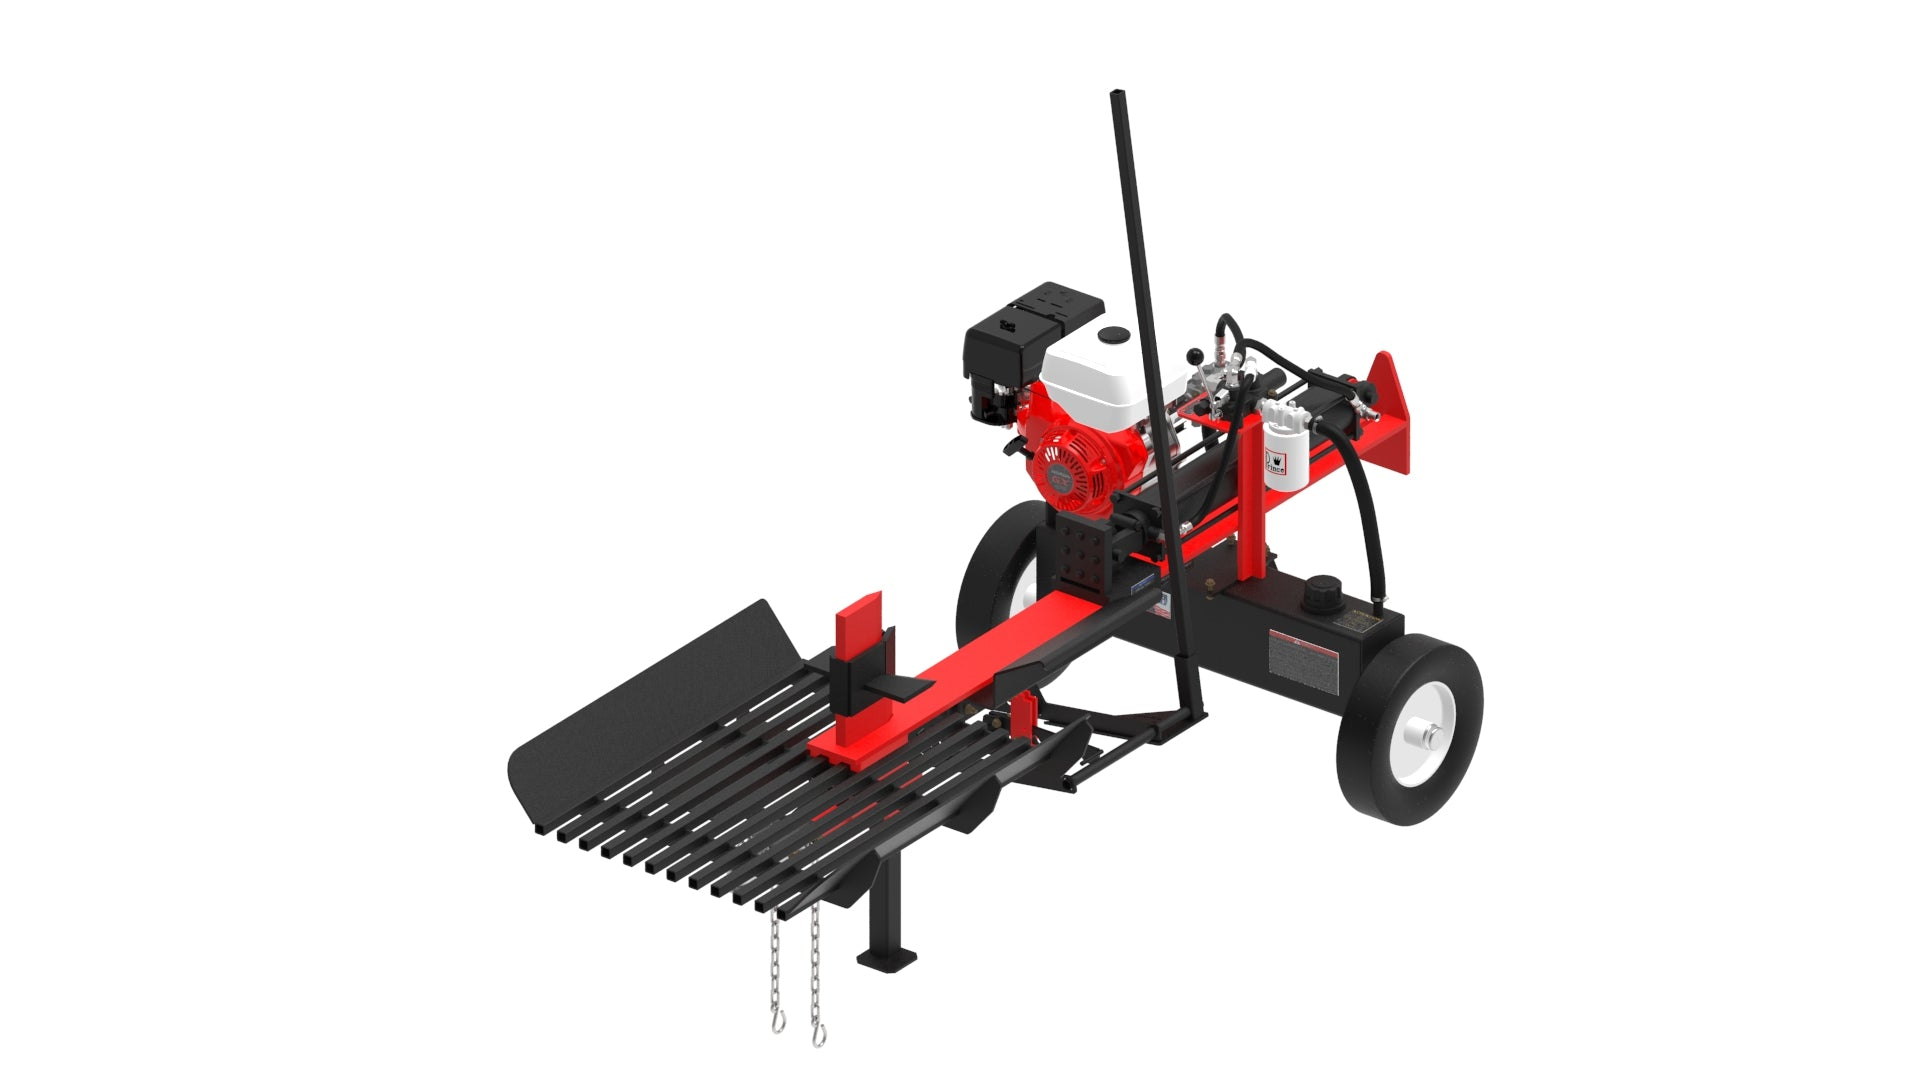 TW-2 4-Way Table Grate Log Lift